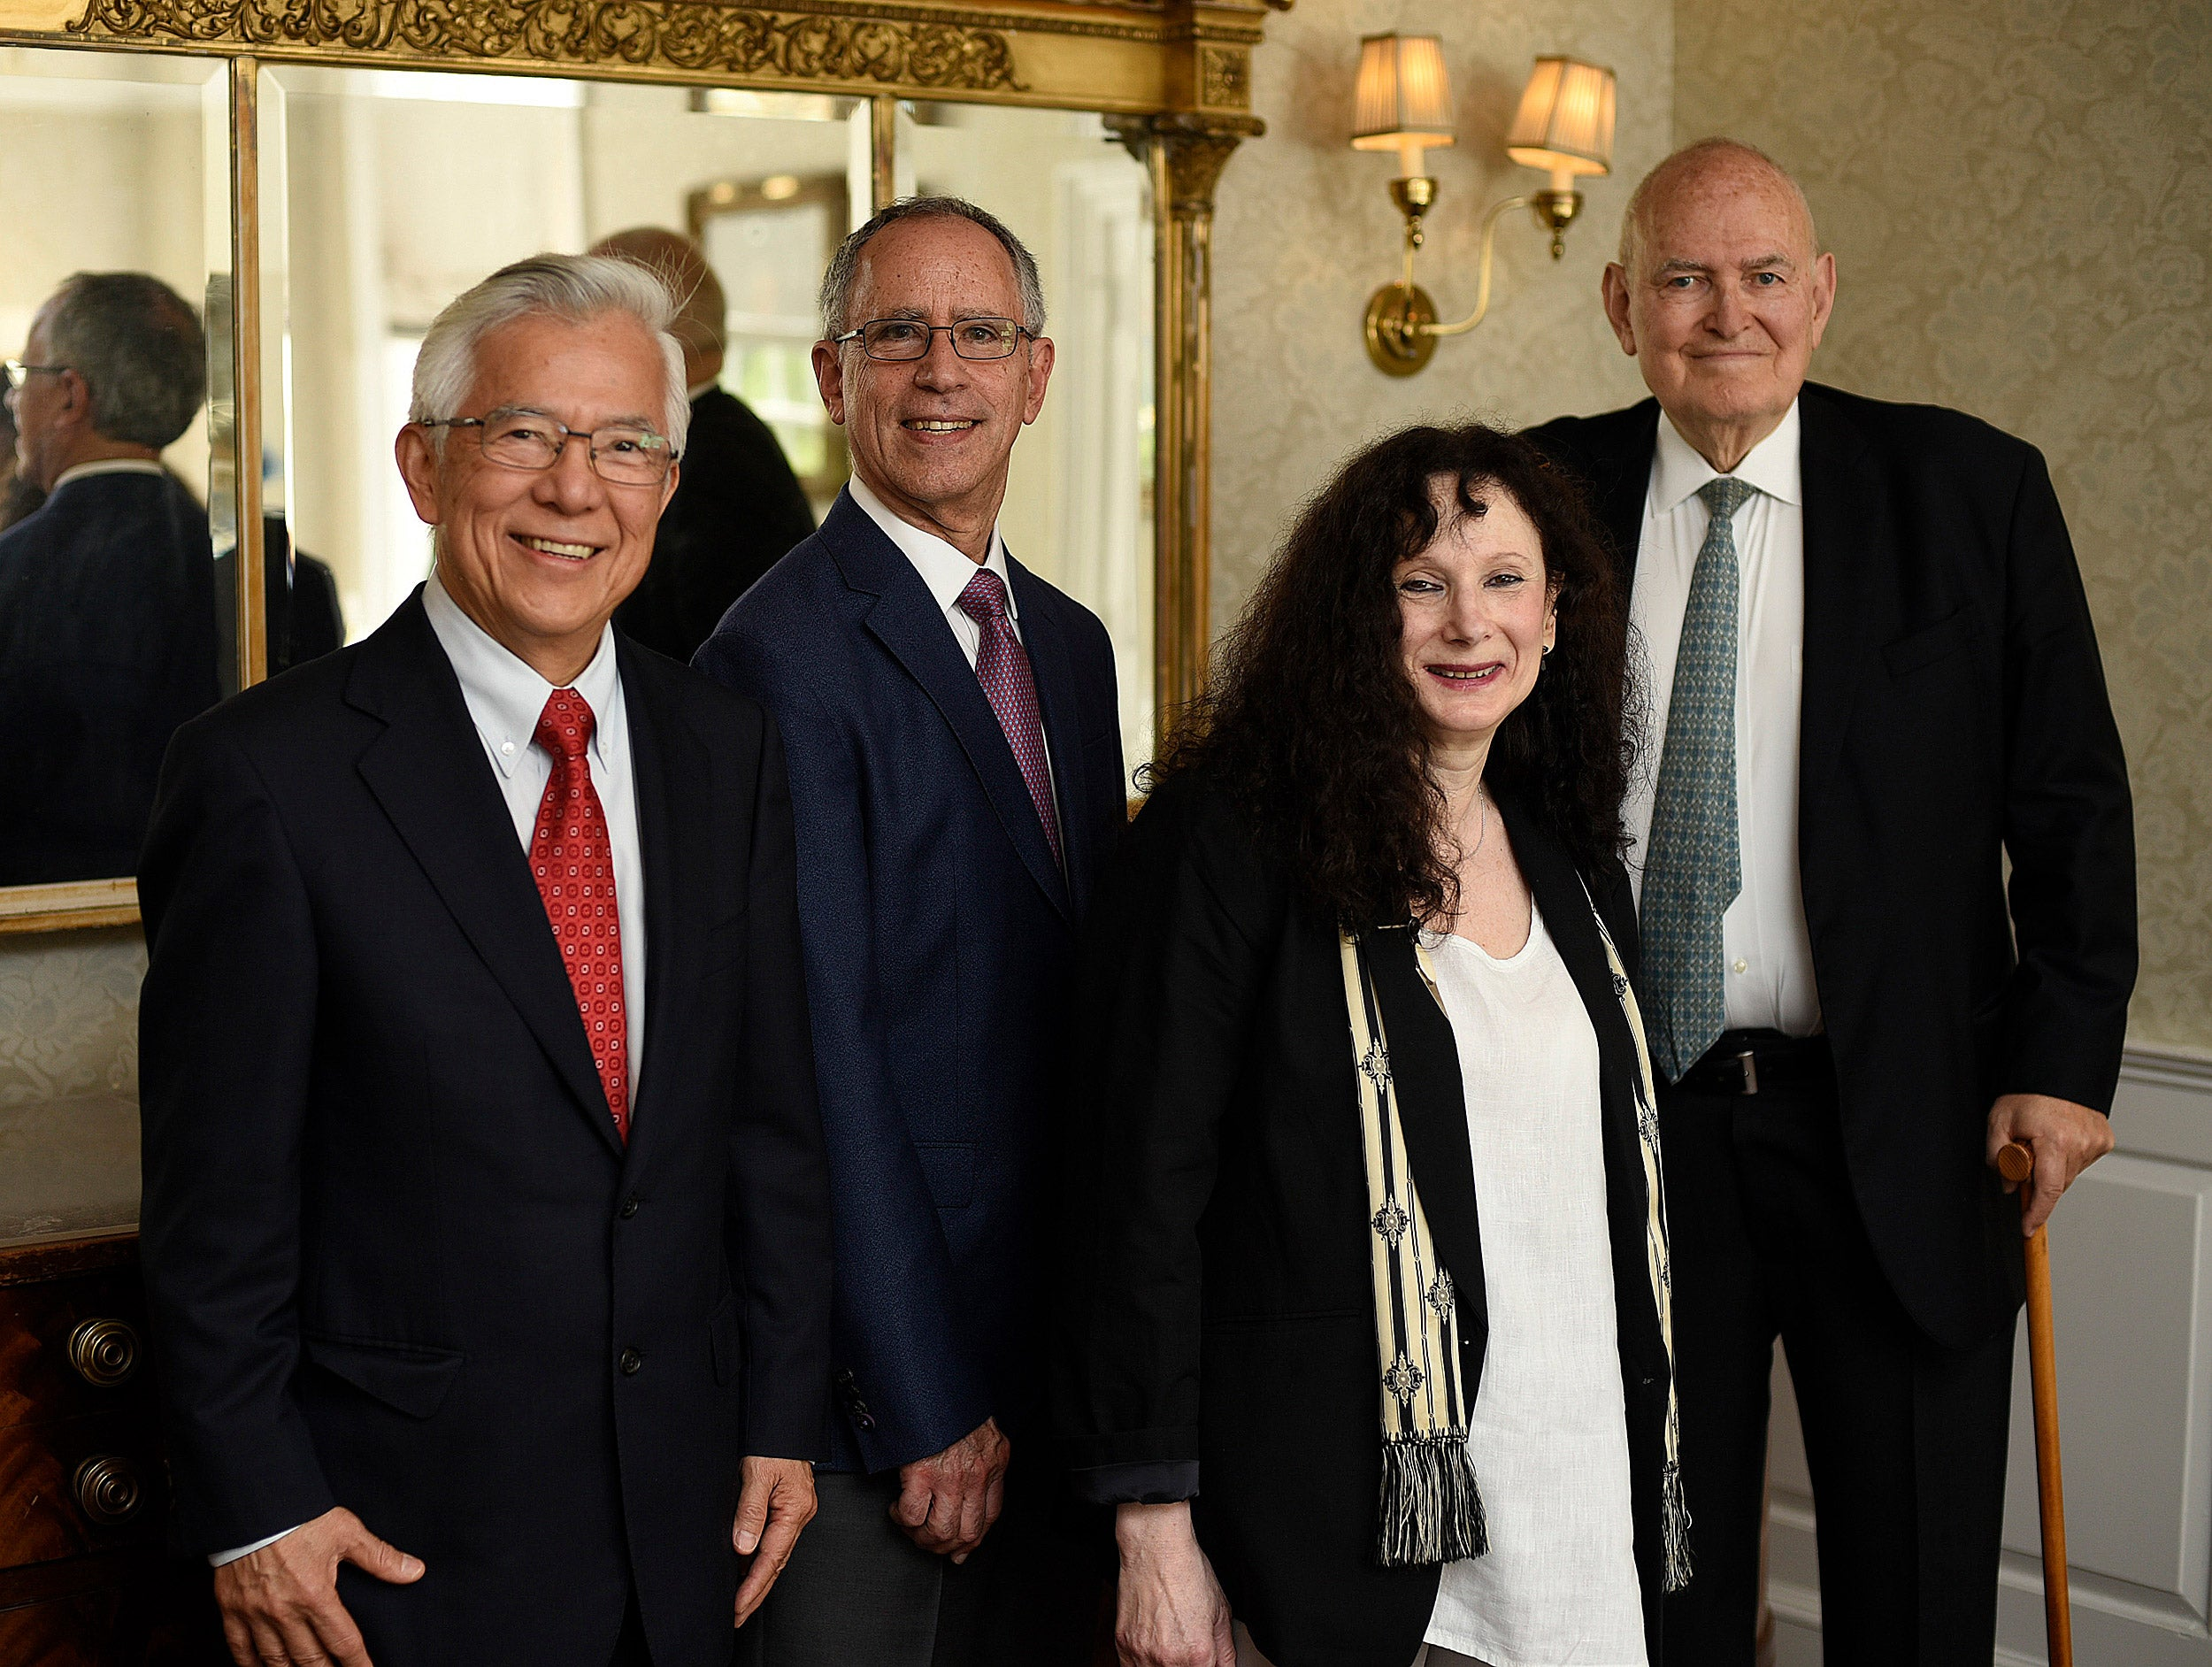 Choon Fong Shih (from left), Harold Luft, Beth Adelson, and Guido  Goldman are the recipients of Harvard's GSAS Centennial Medal.